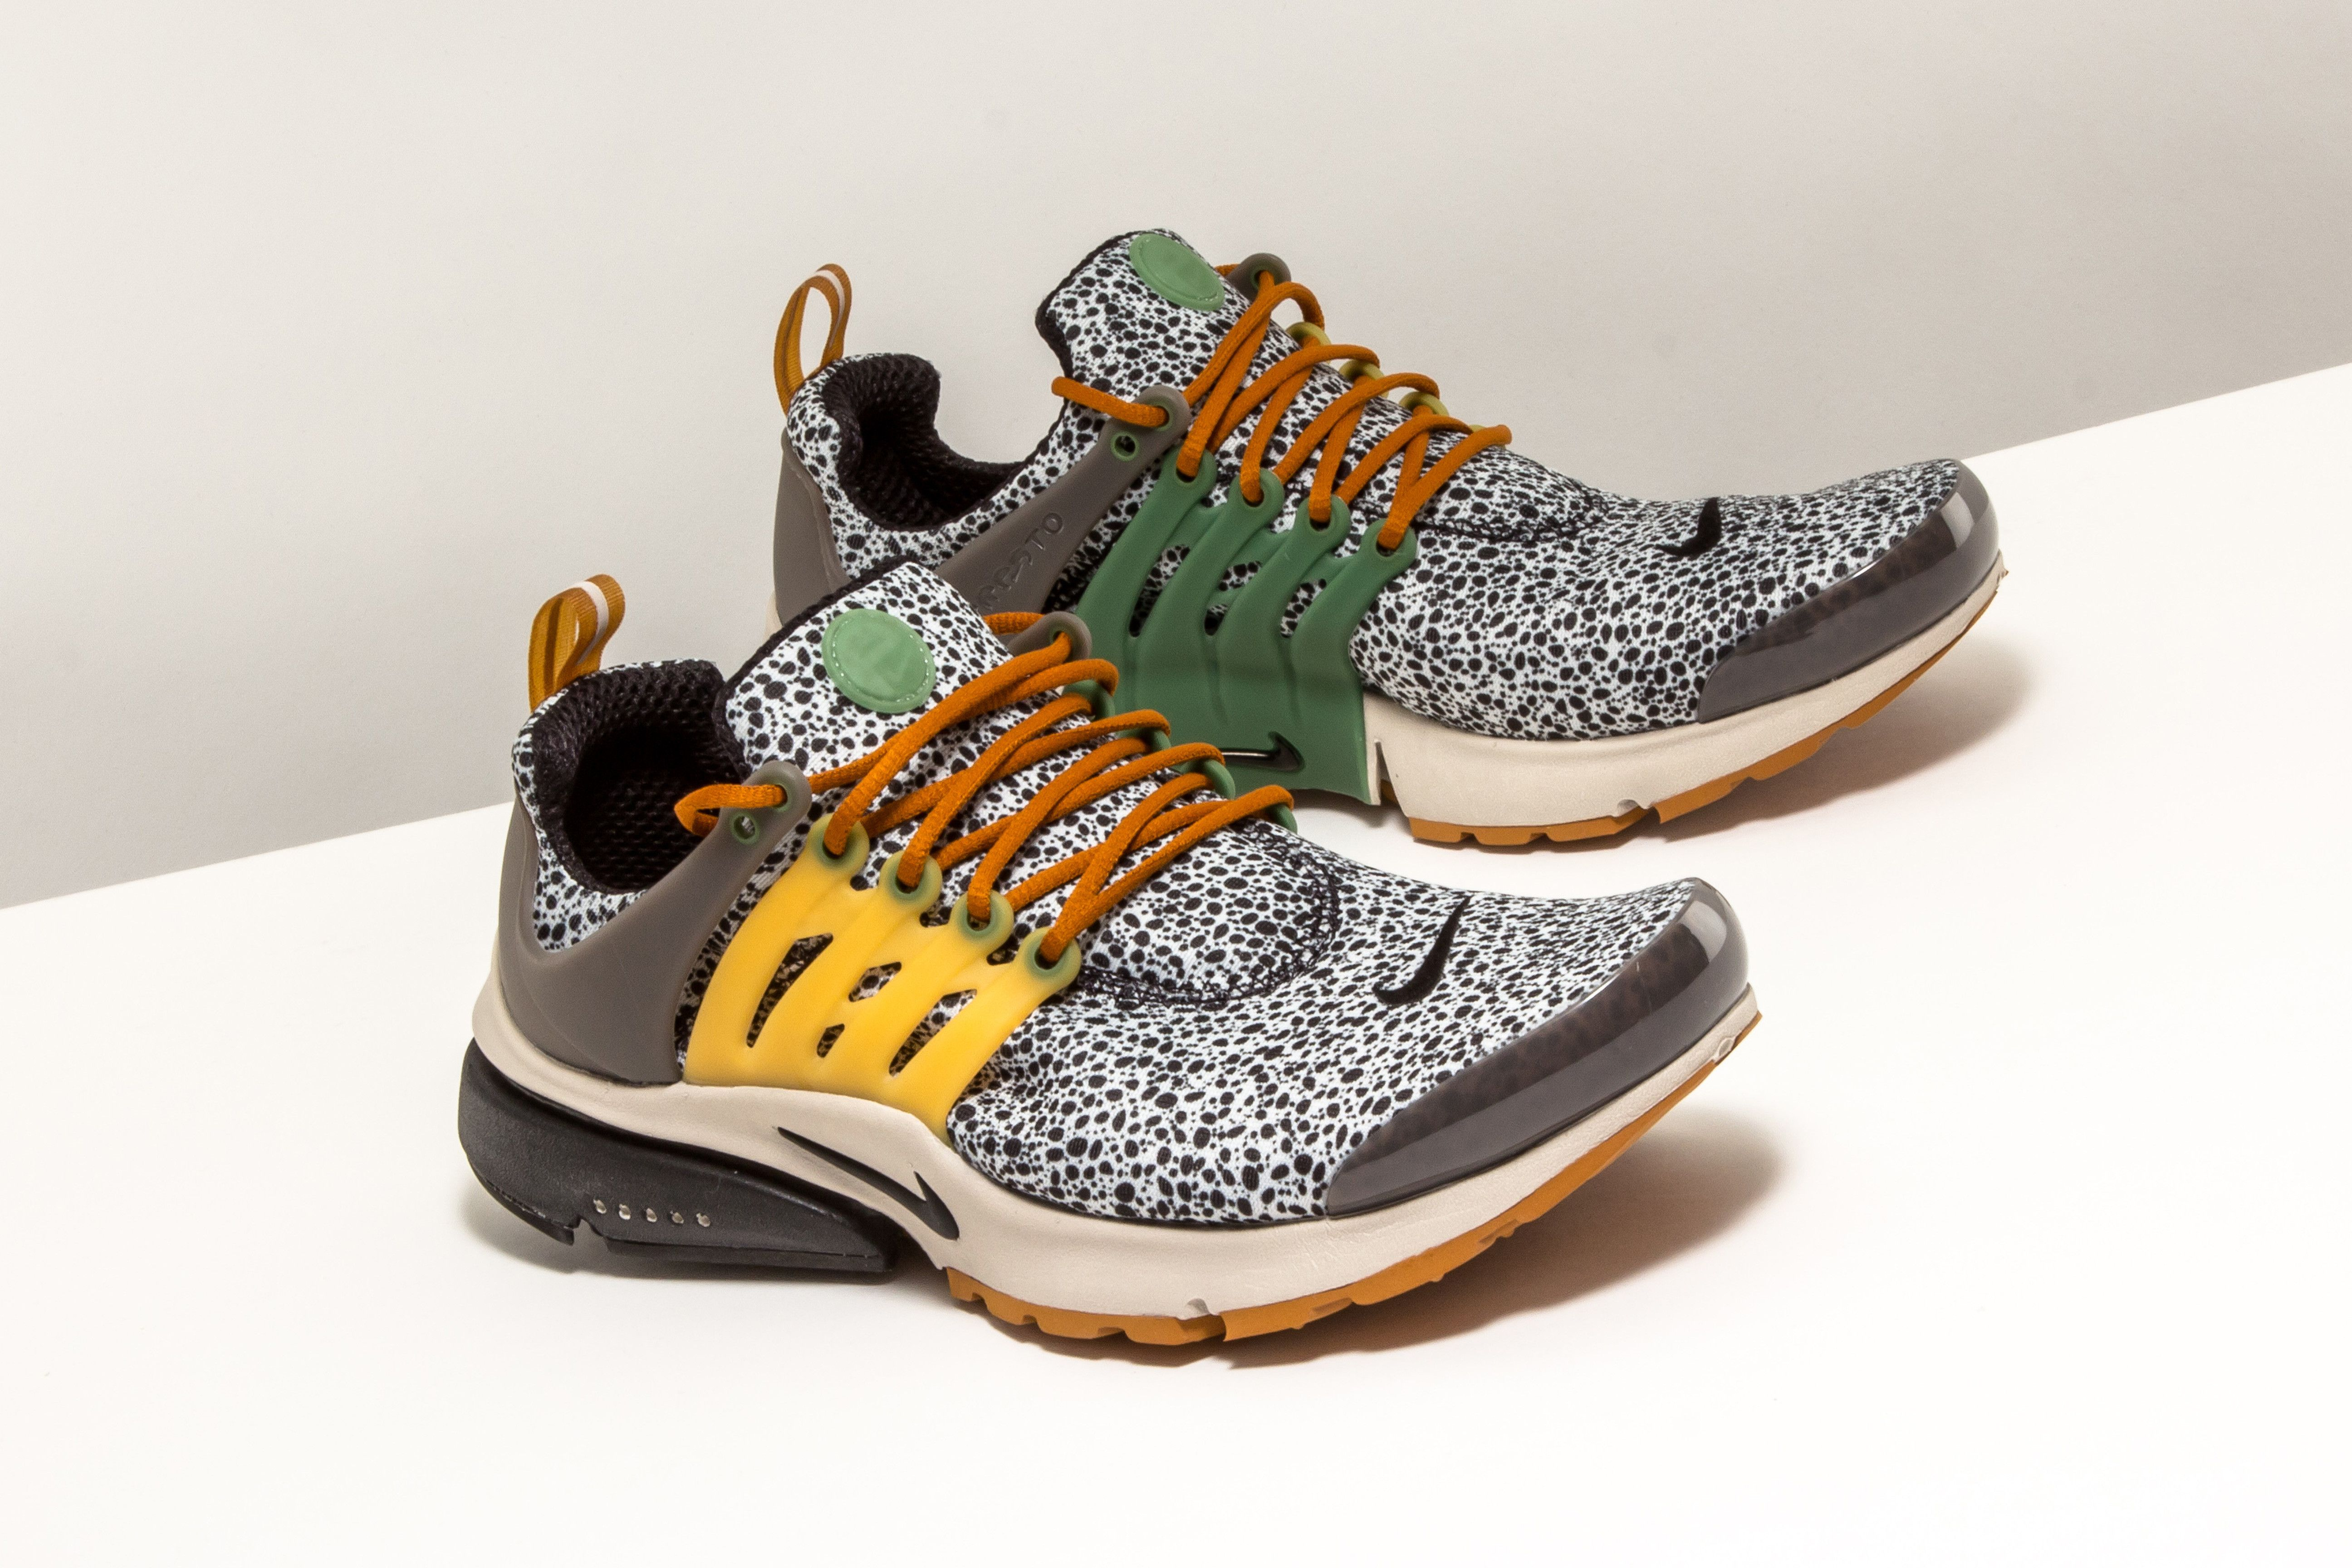 men's nike presto x doernbecher shoes 2016 may tims boots boys